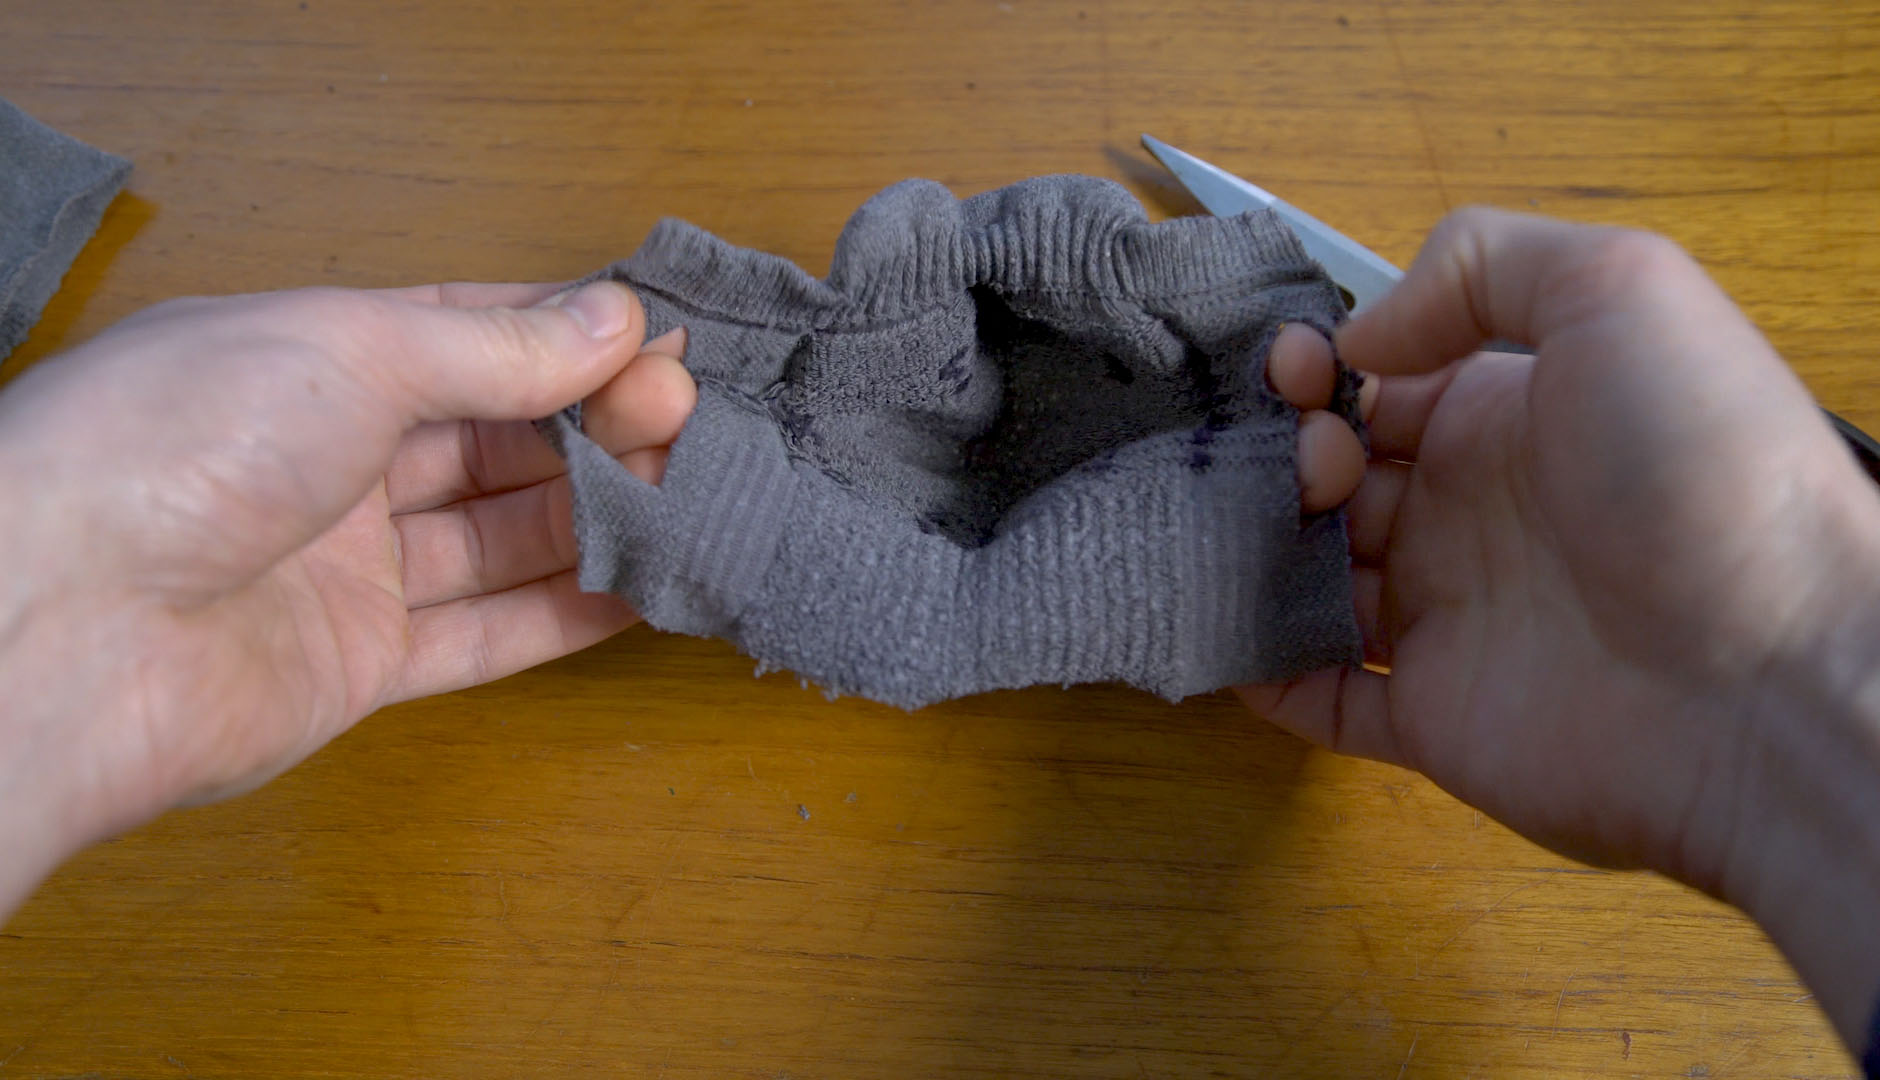 hands holding sock face mask with loops